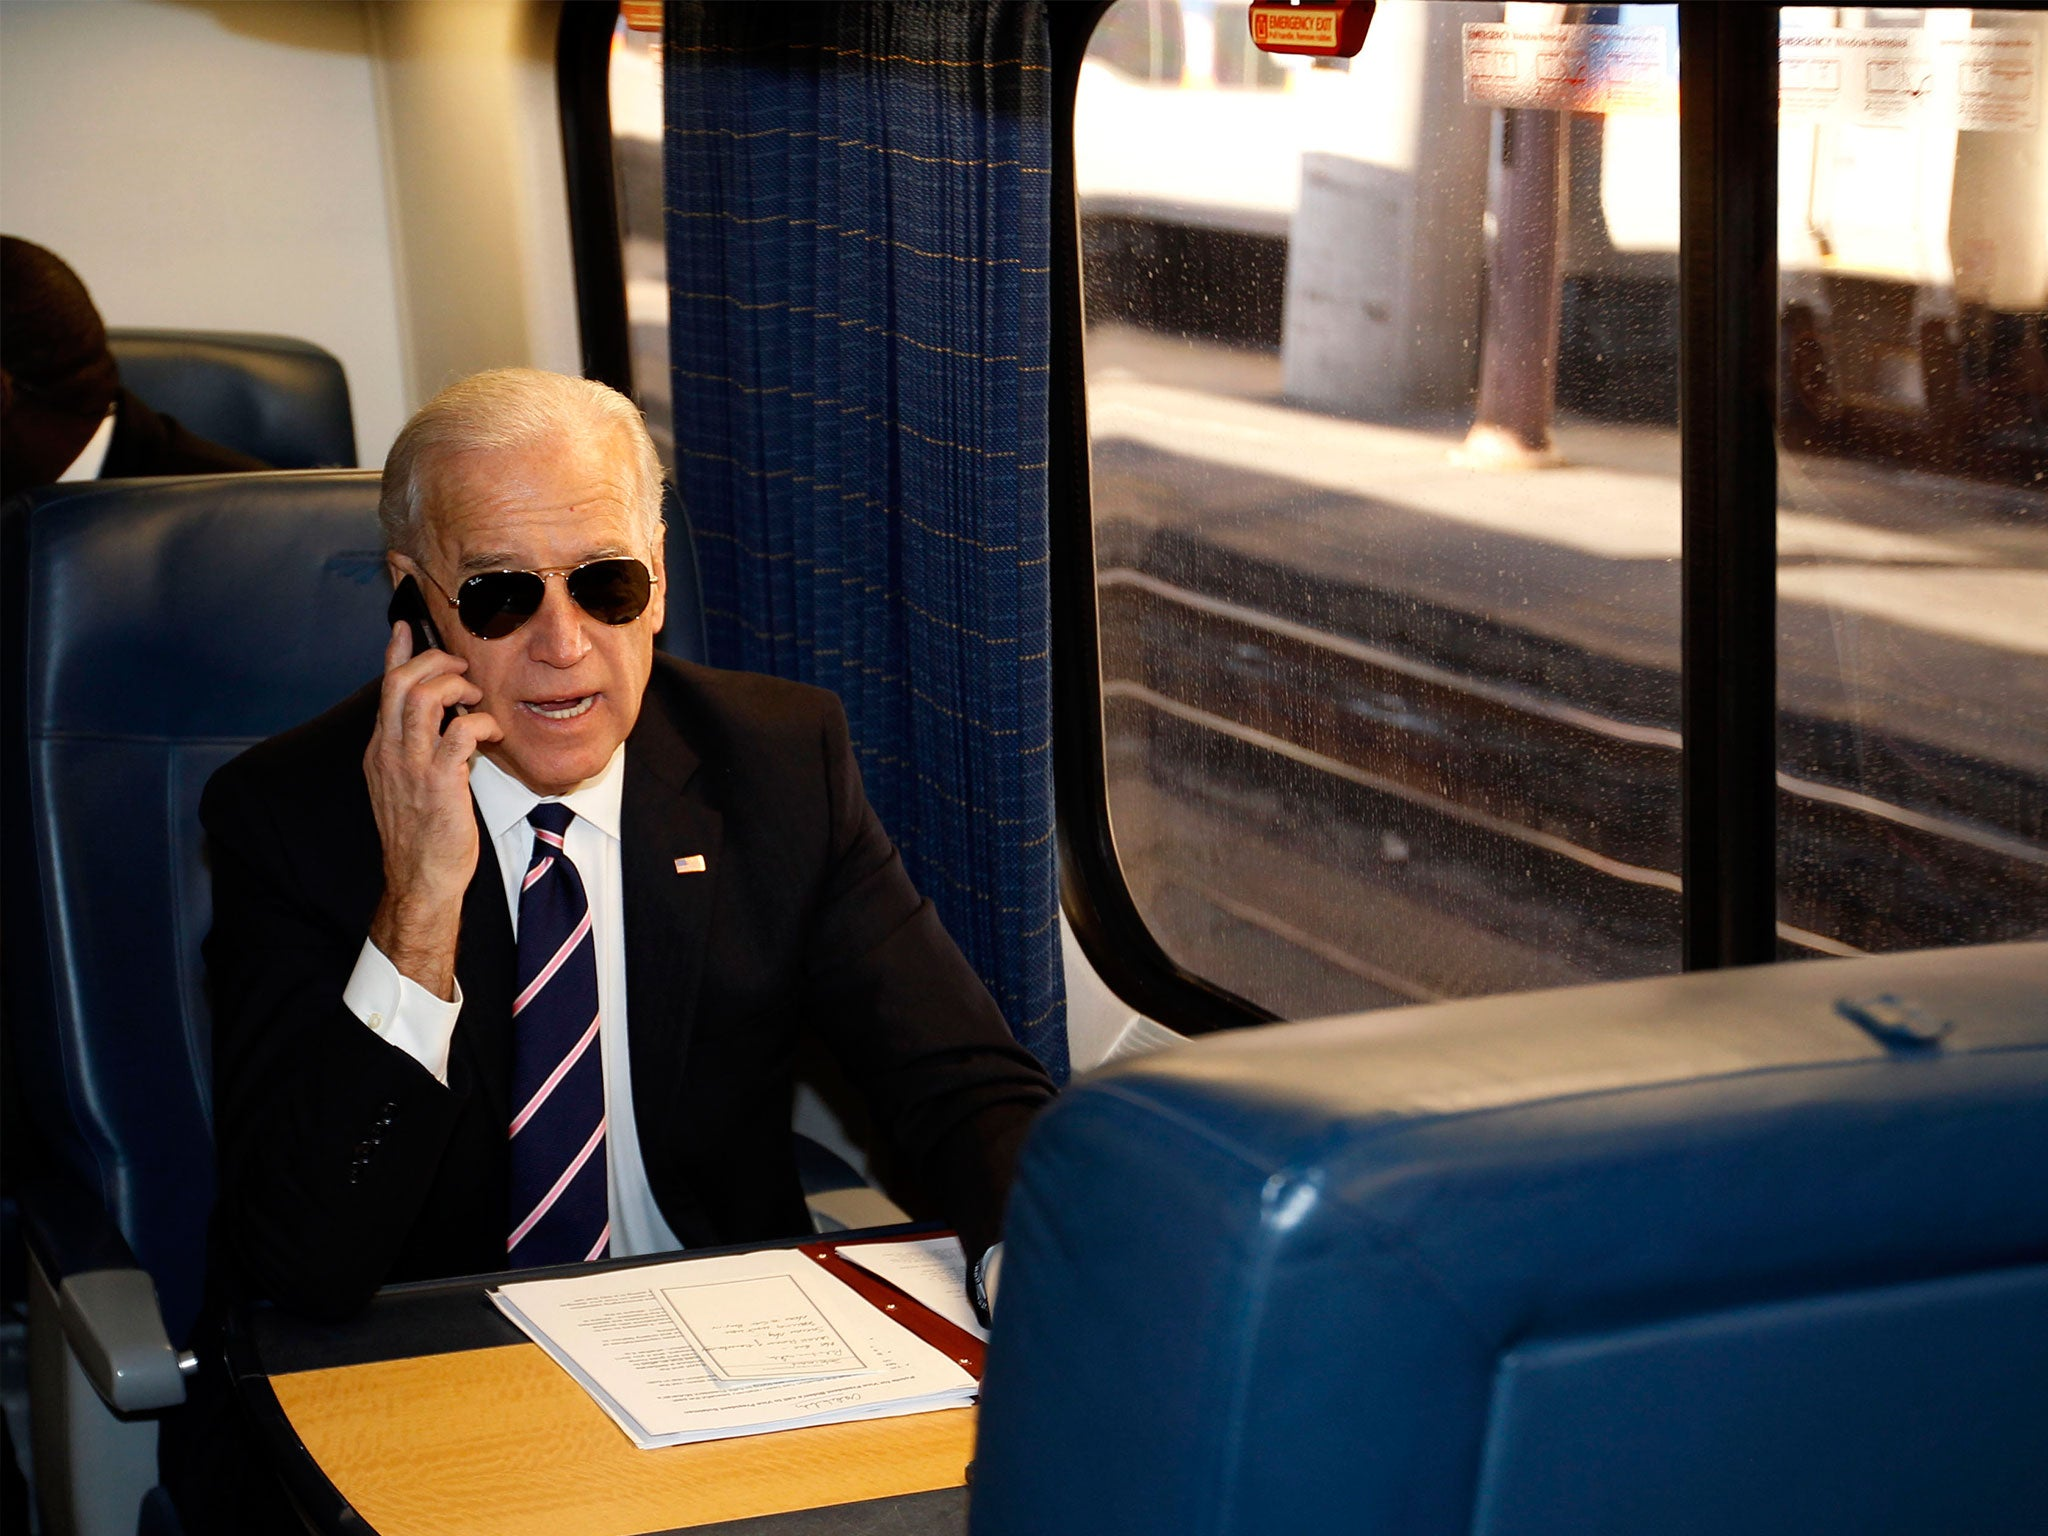 'Amtrak' Joe Biden takes the train home to Delaware after ...